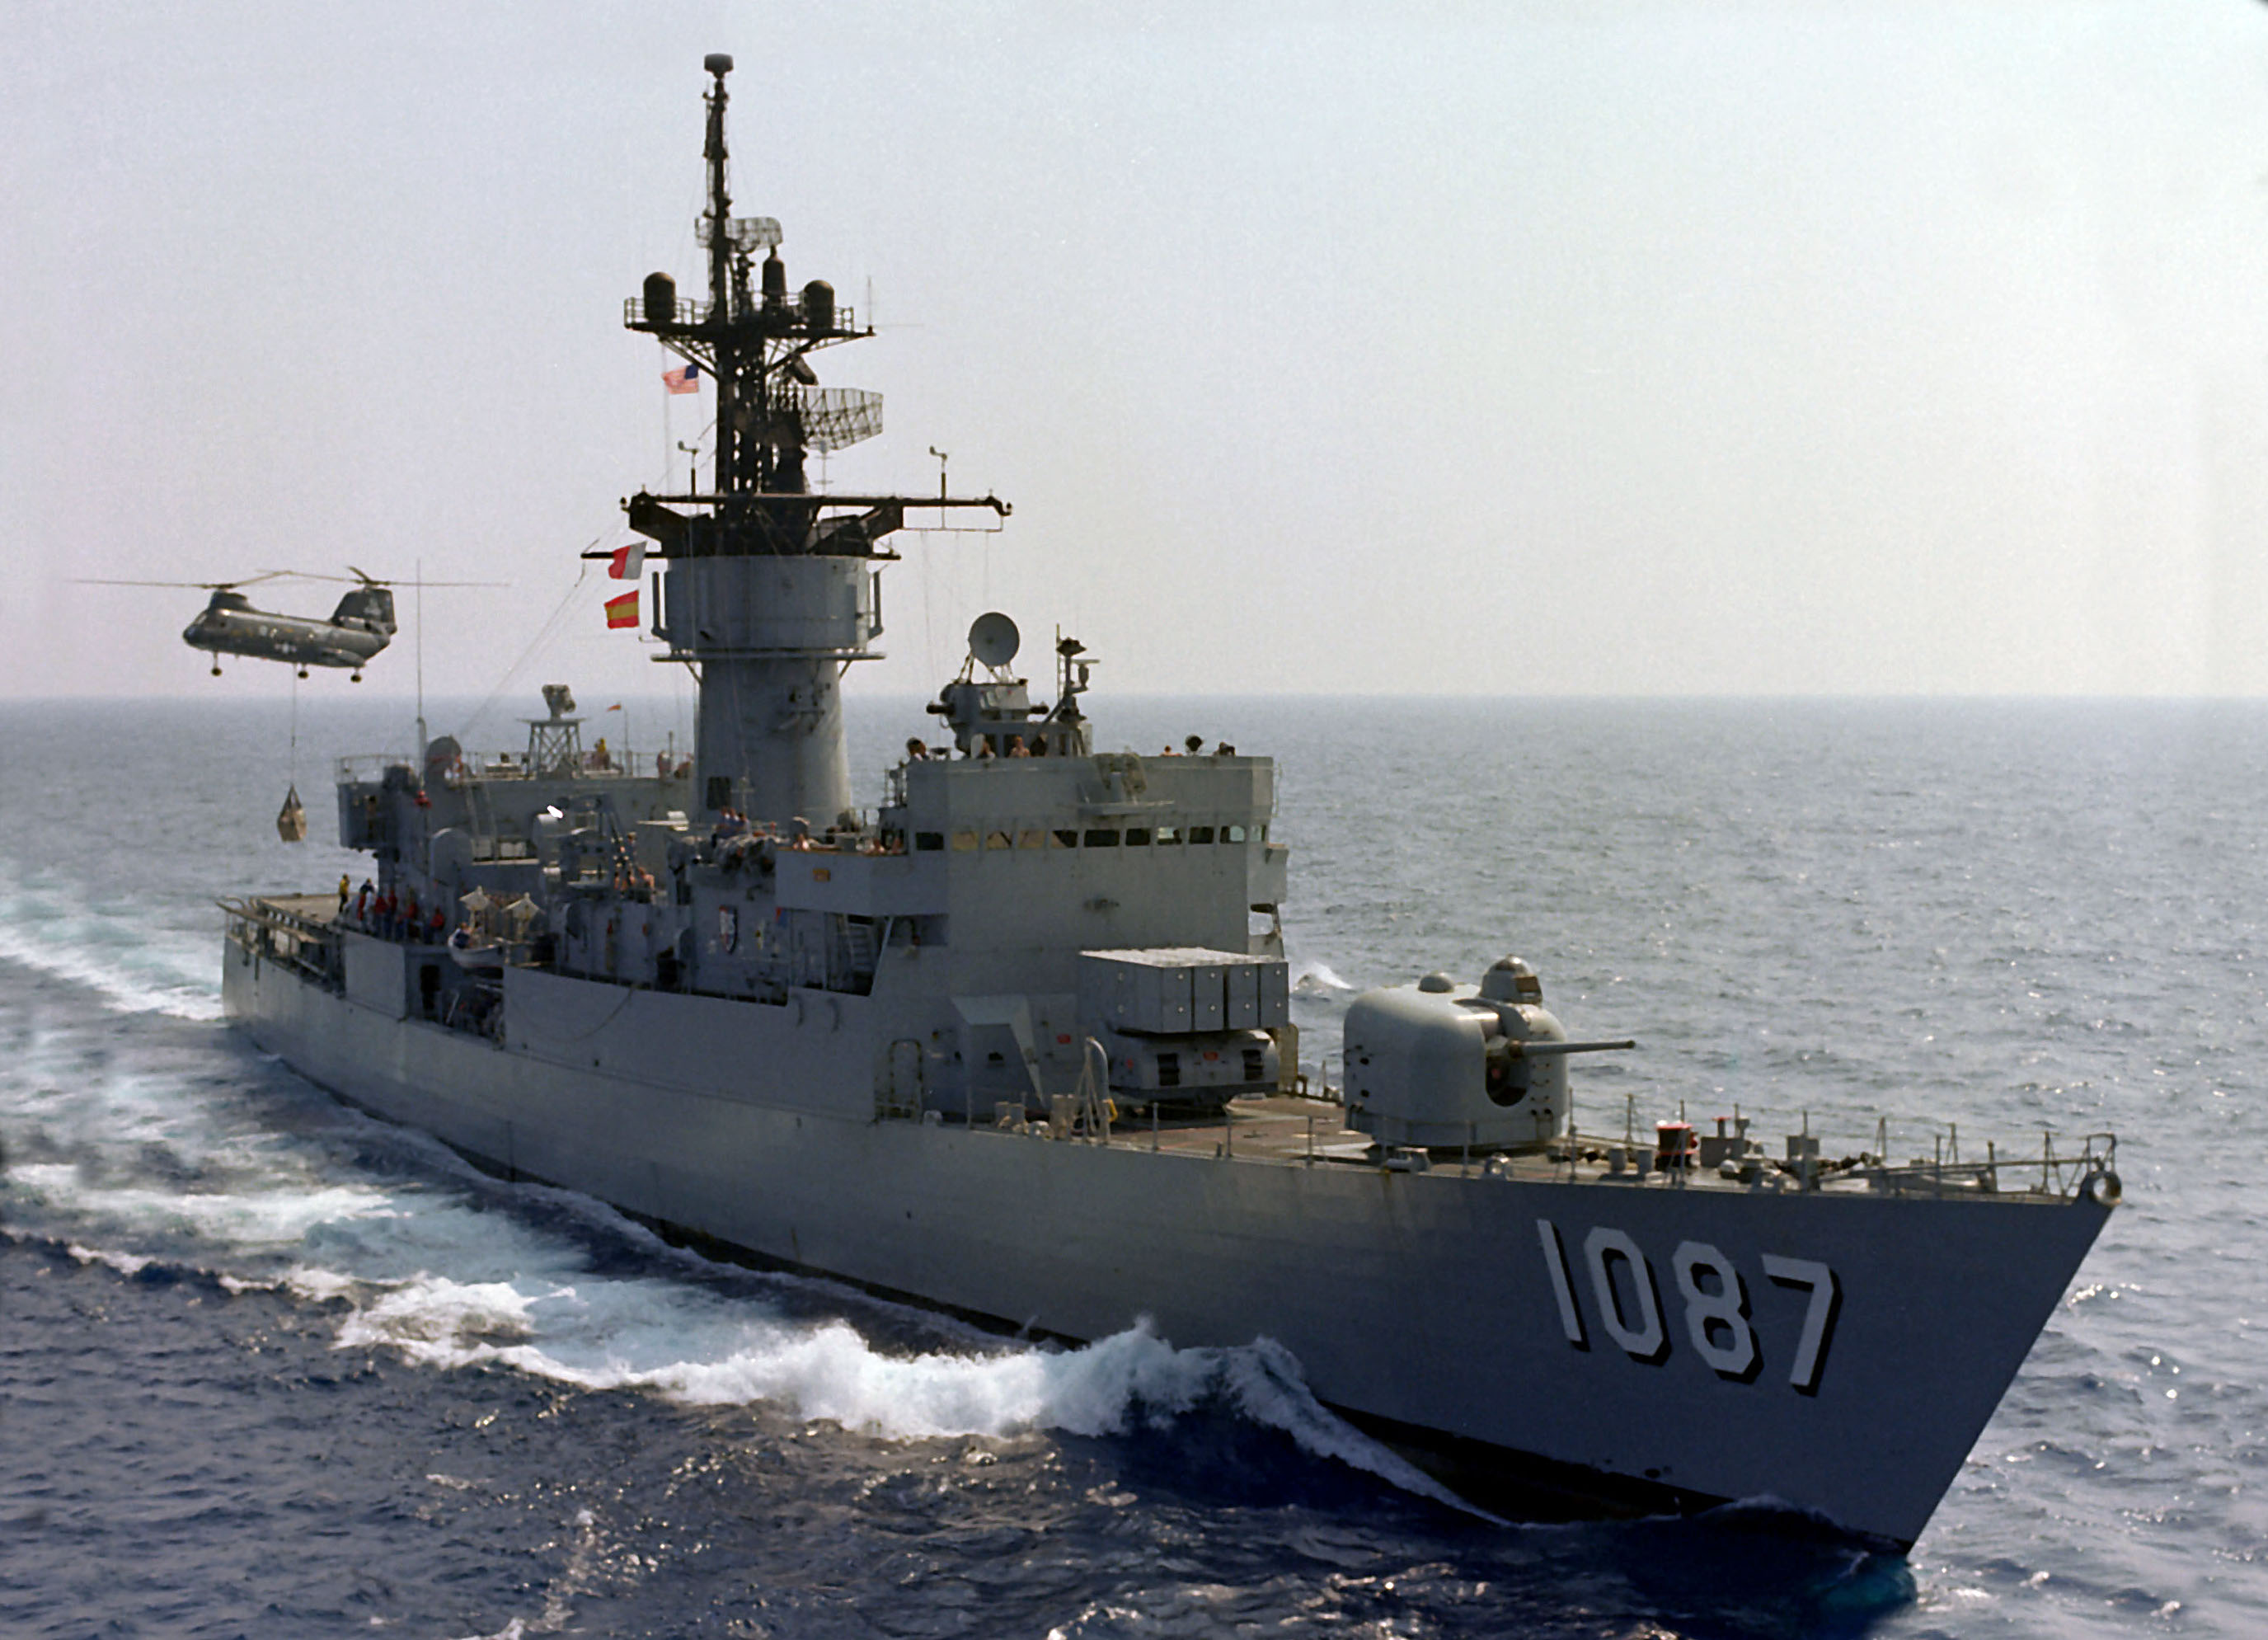 http://upload.wikimedia.org/wikipedia/commons/1/1e/USS_Kirk_%28FF-1087%29_UNREP.jpg